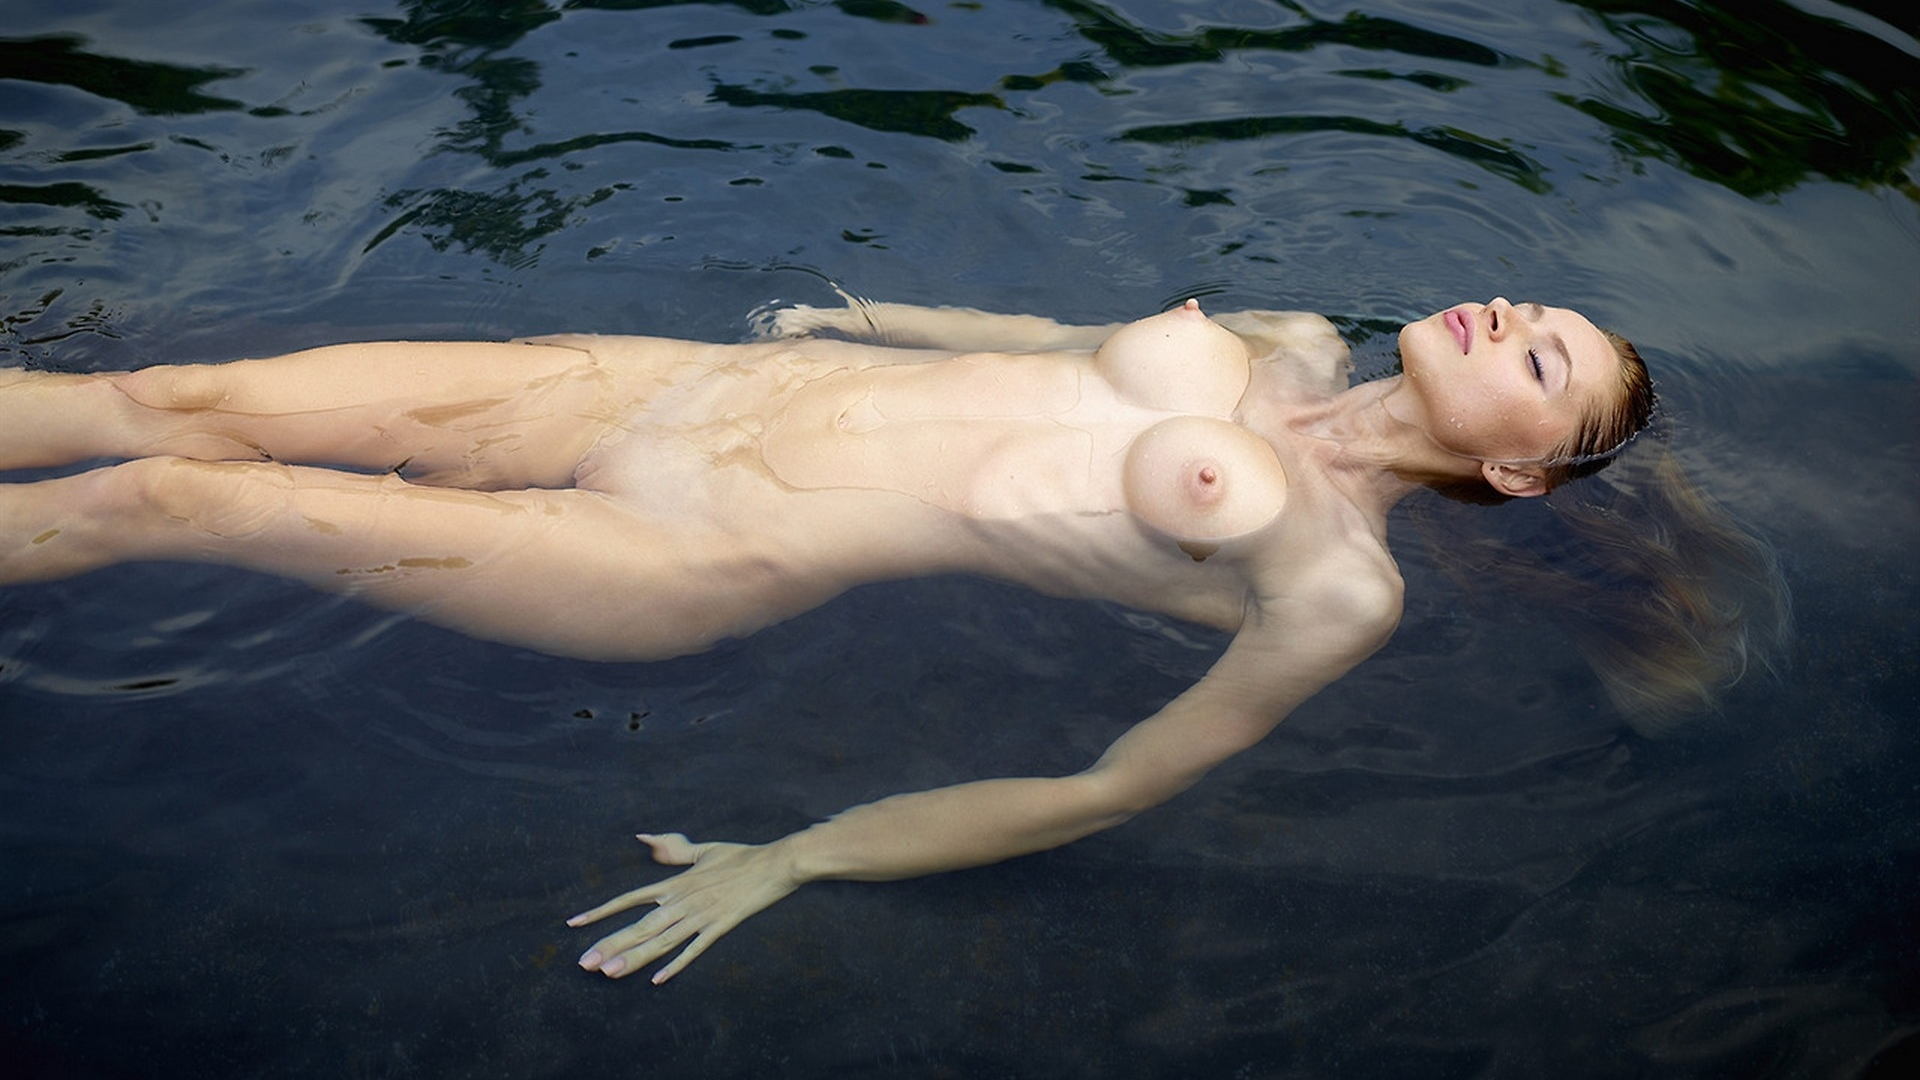 native-girl-naked-in-water-nude-shaved-cock